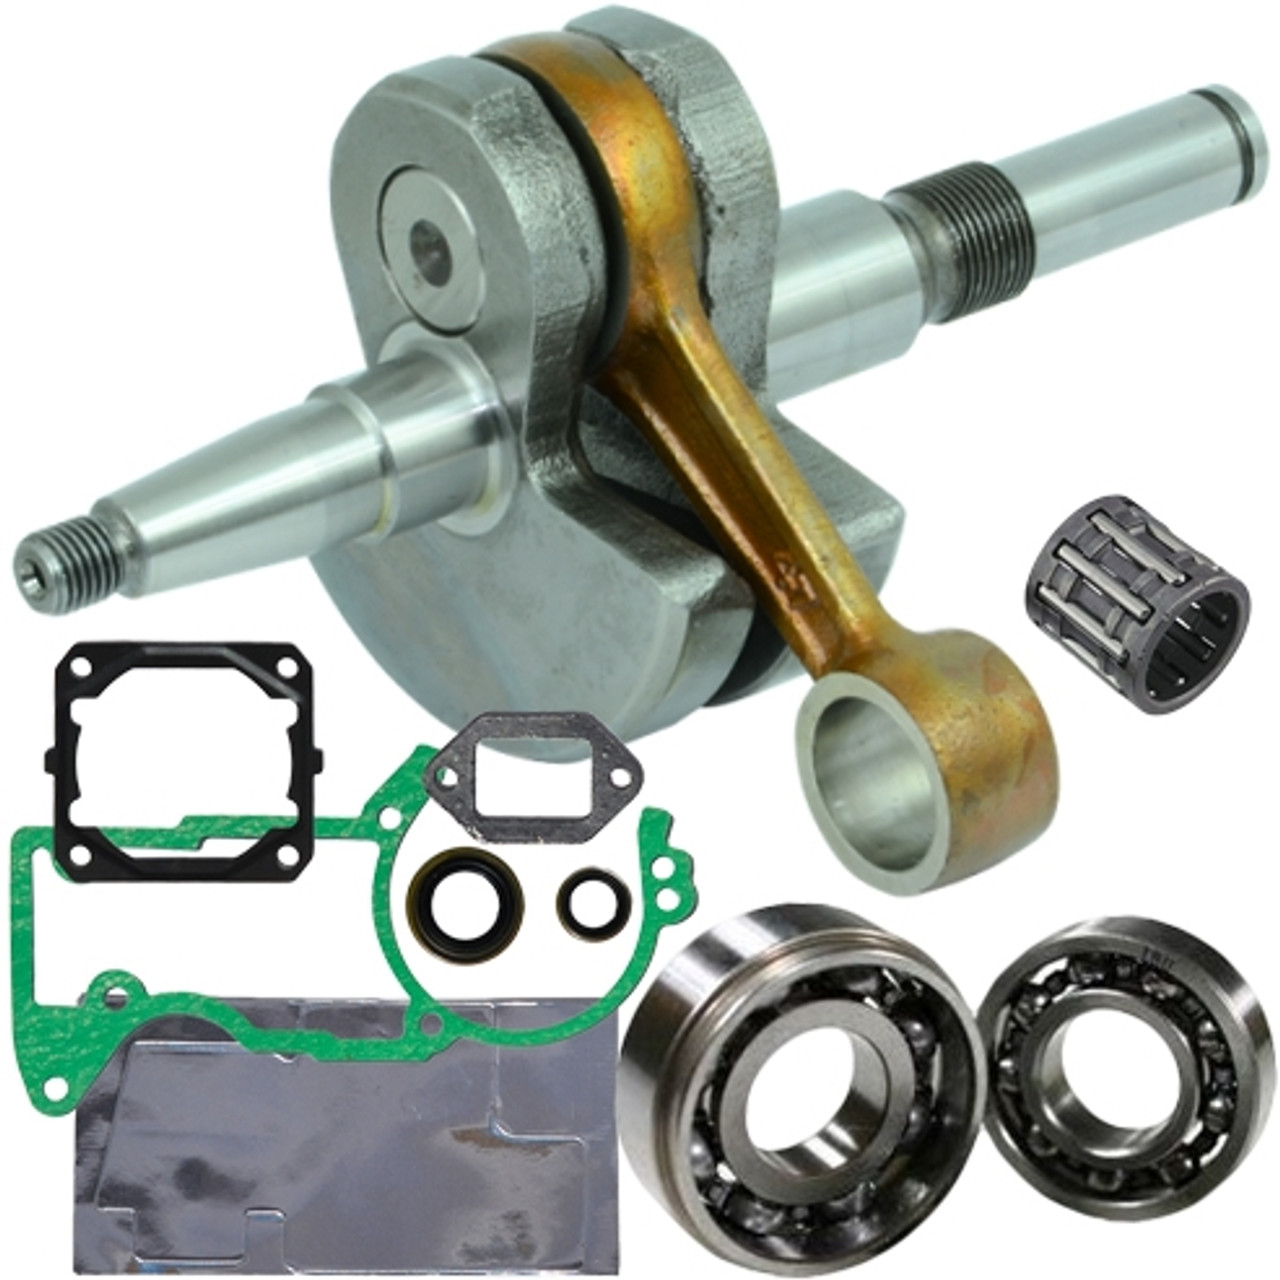 Crankshaft Bearings and Seal Kit for Stihl MS440 044 Chainsaws